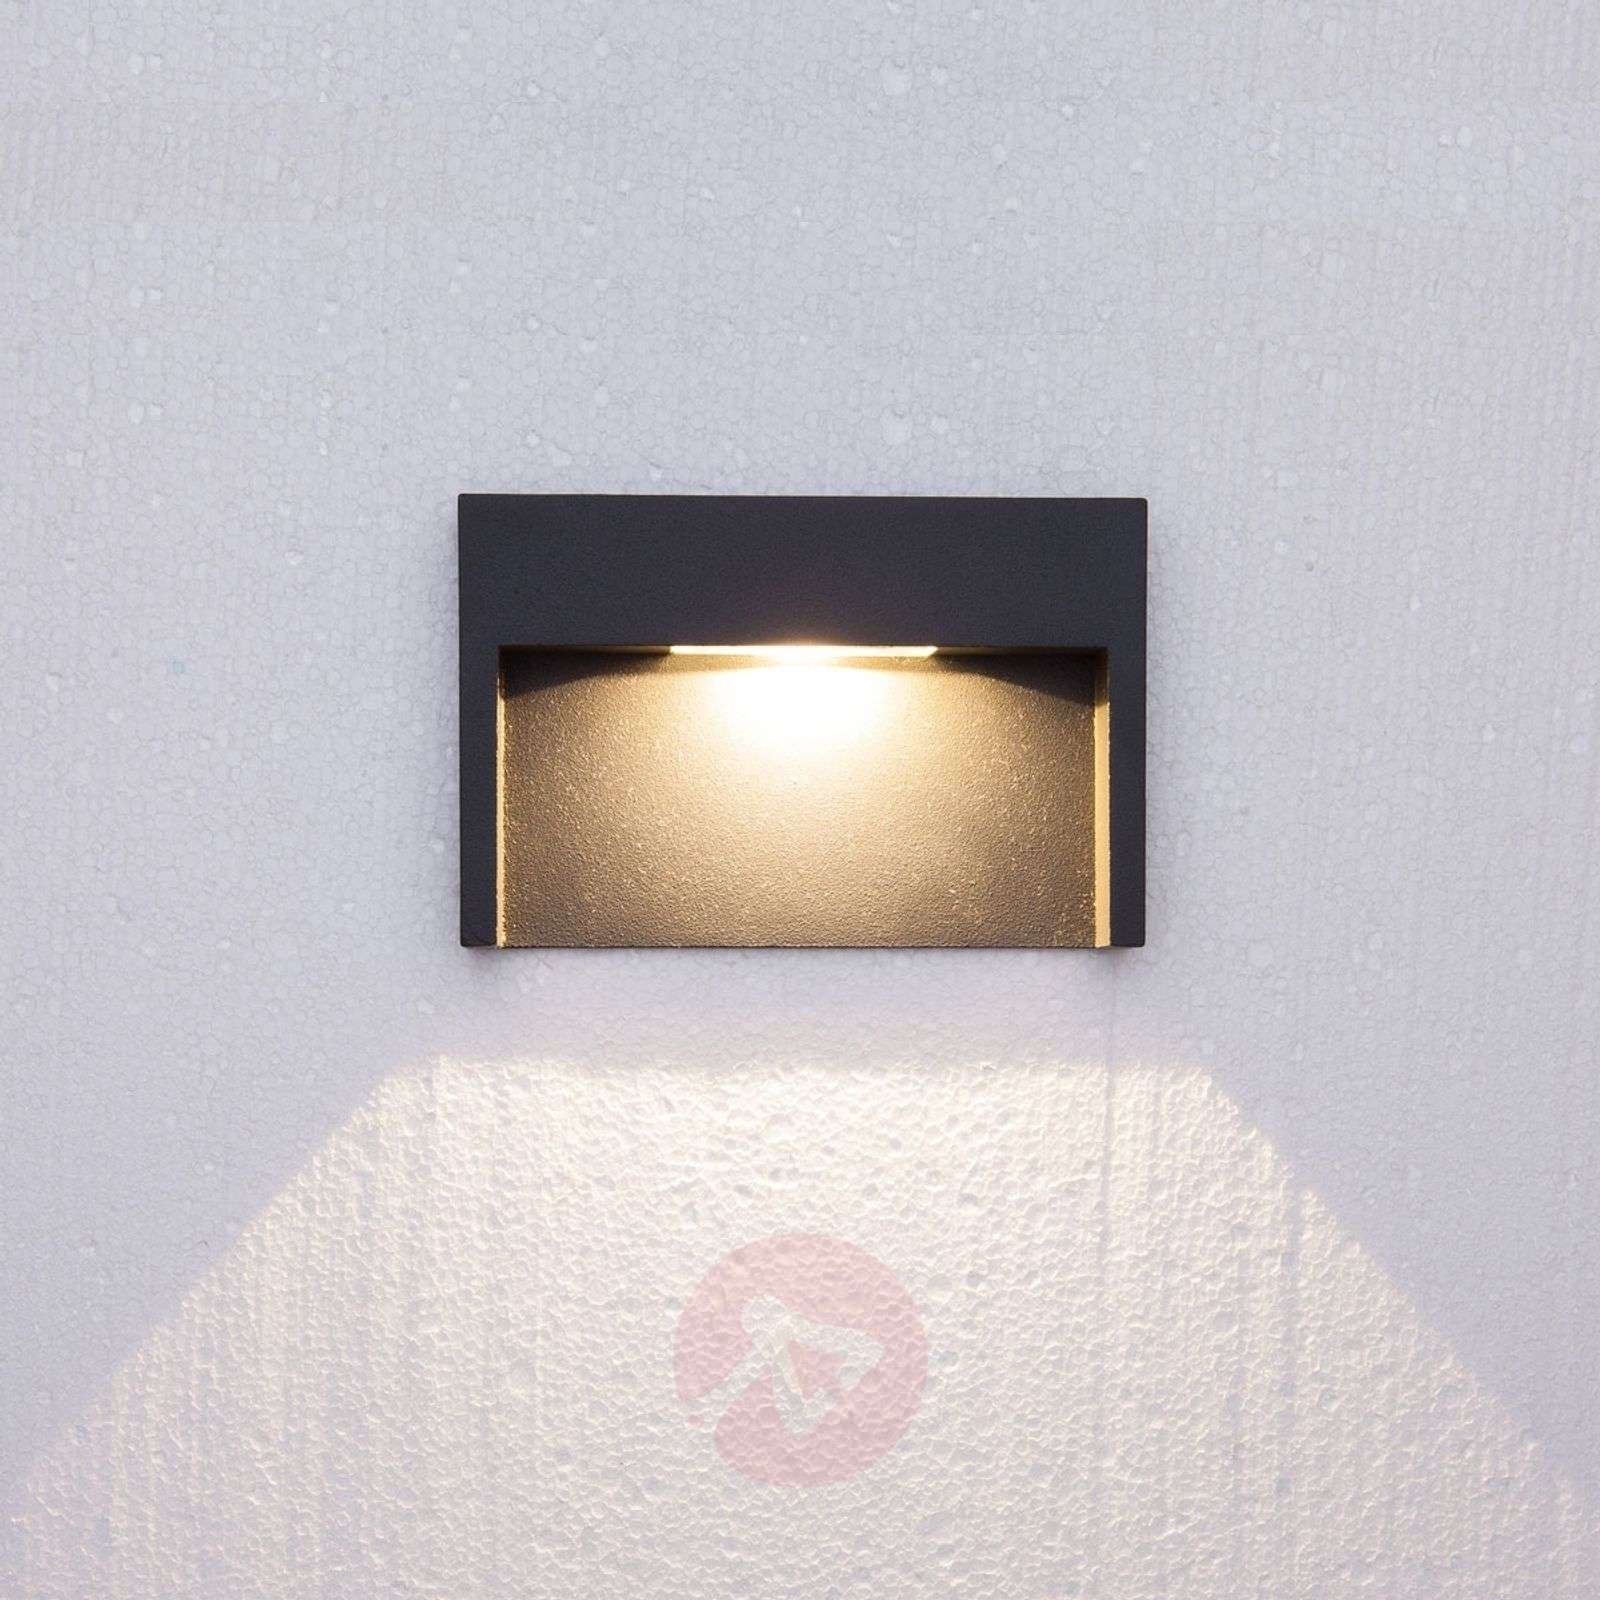 3 W LED wall light fixture Mitja, IP65-9616003-01